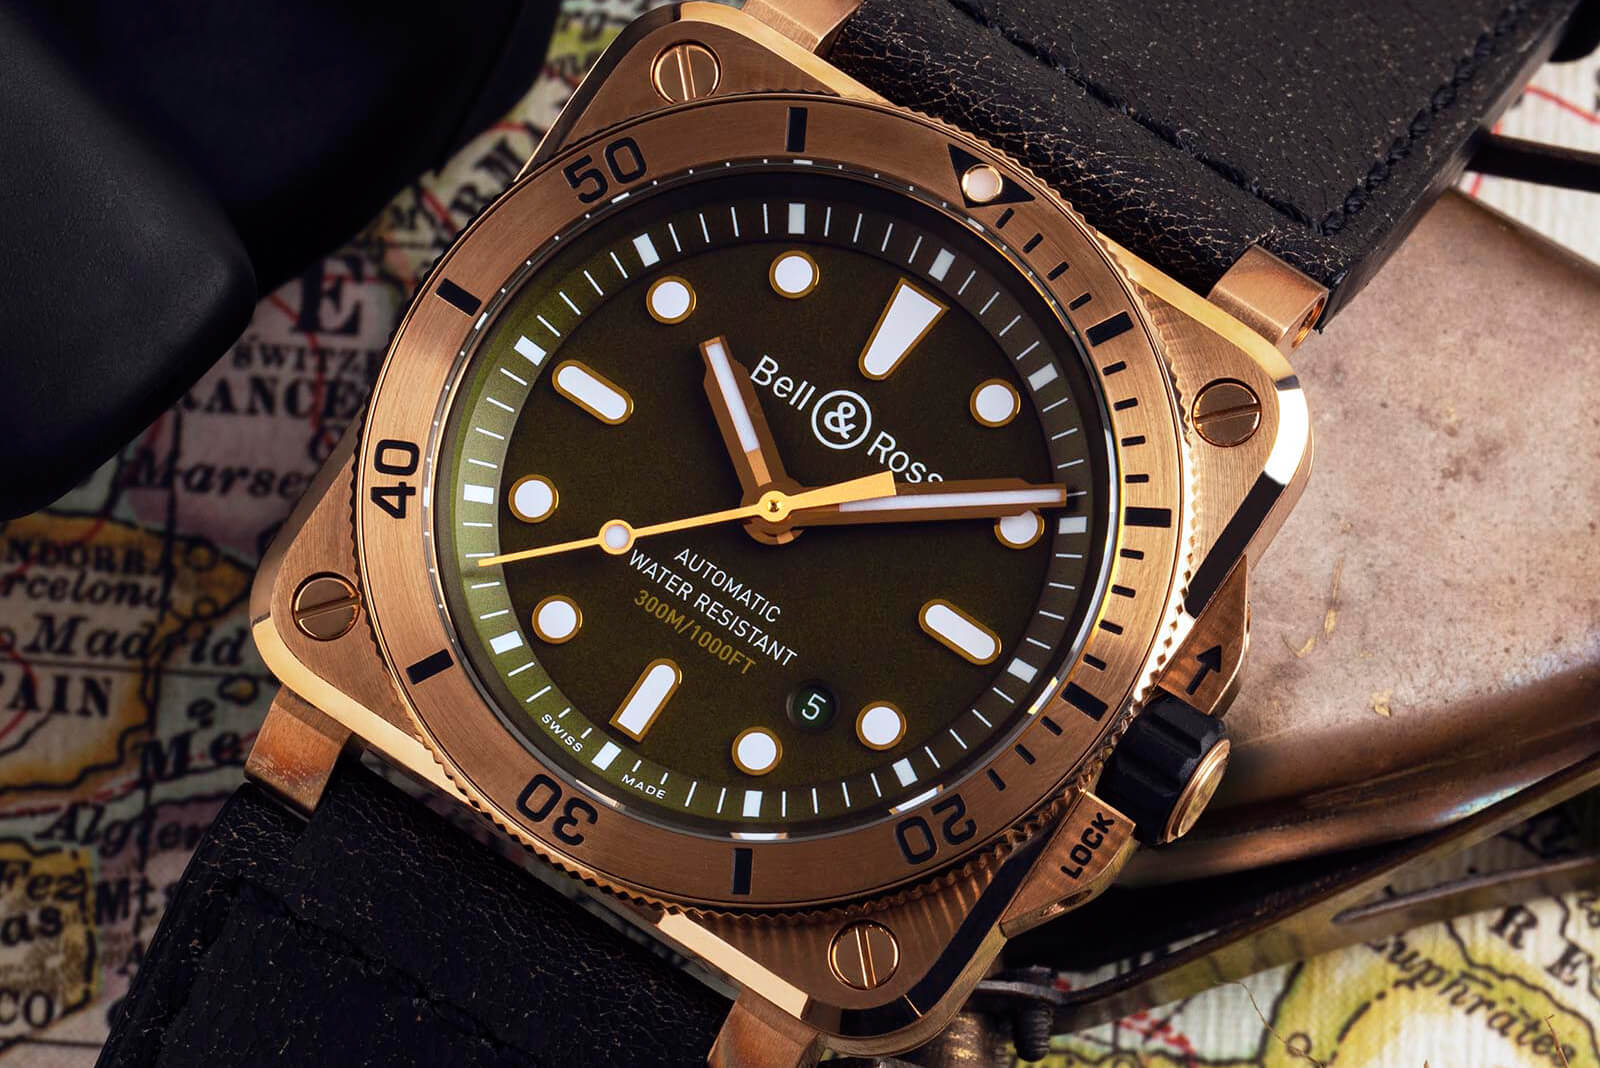 BR 03-92 Diver :-) - Page 5 Bell-Ross-BR-03-92-Demiurgas-with-Khaki-Green-Dial-2